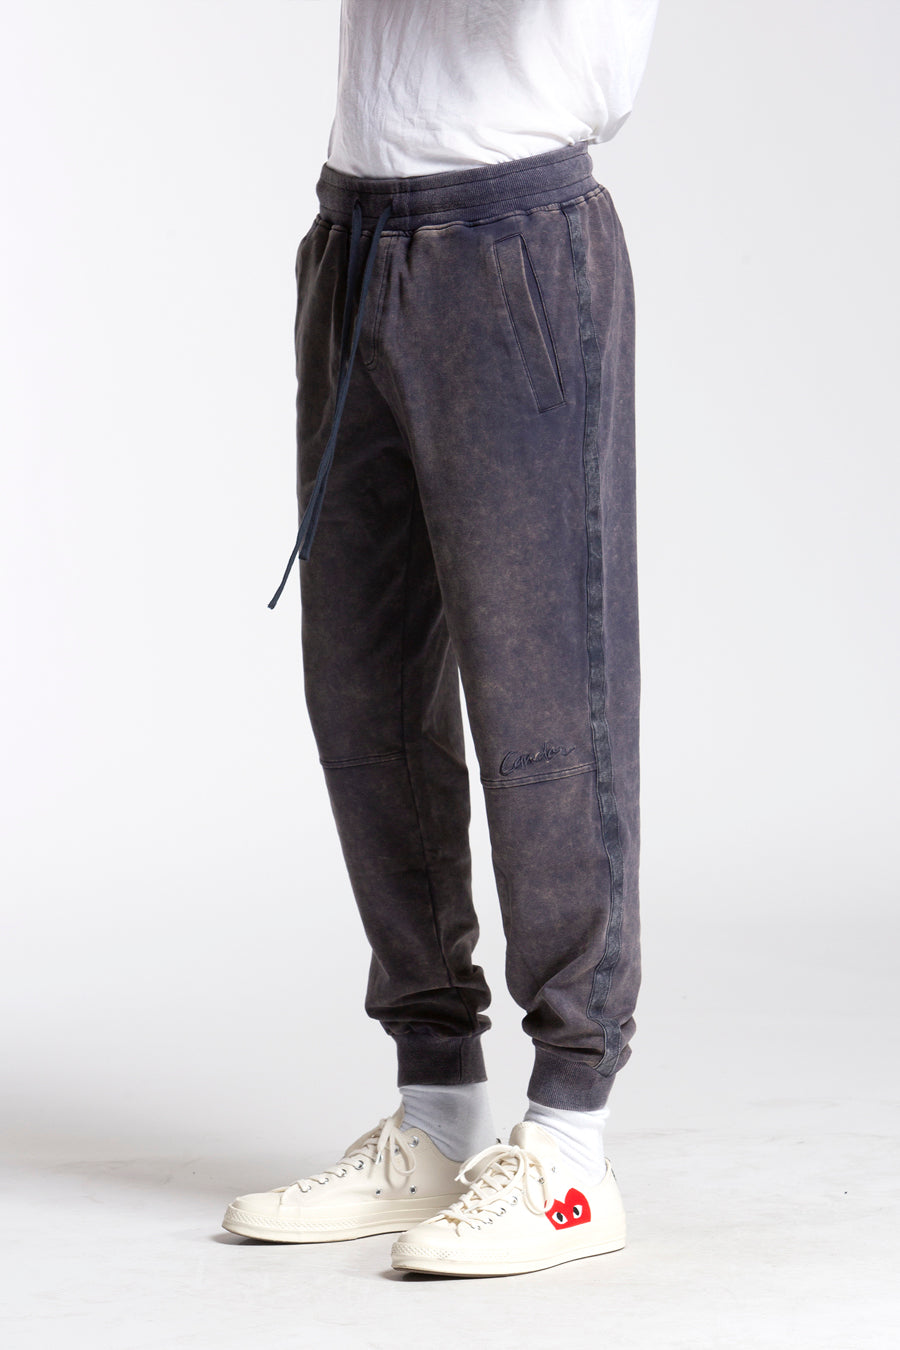 candorofficial - Washed Sweatpants, Blue - Bottoms